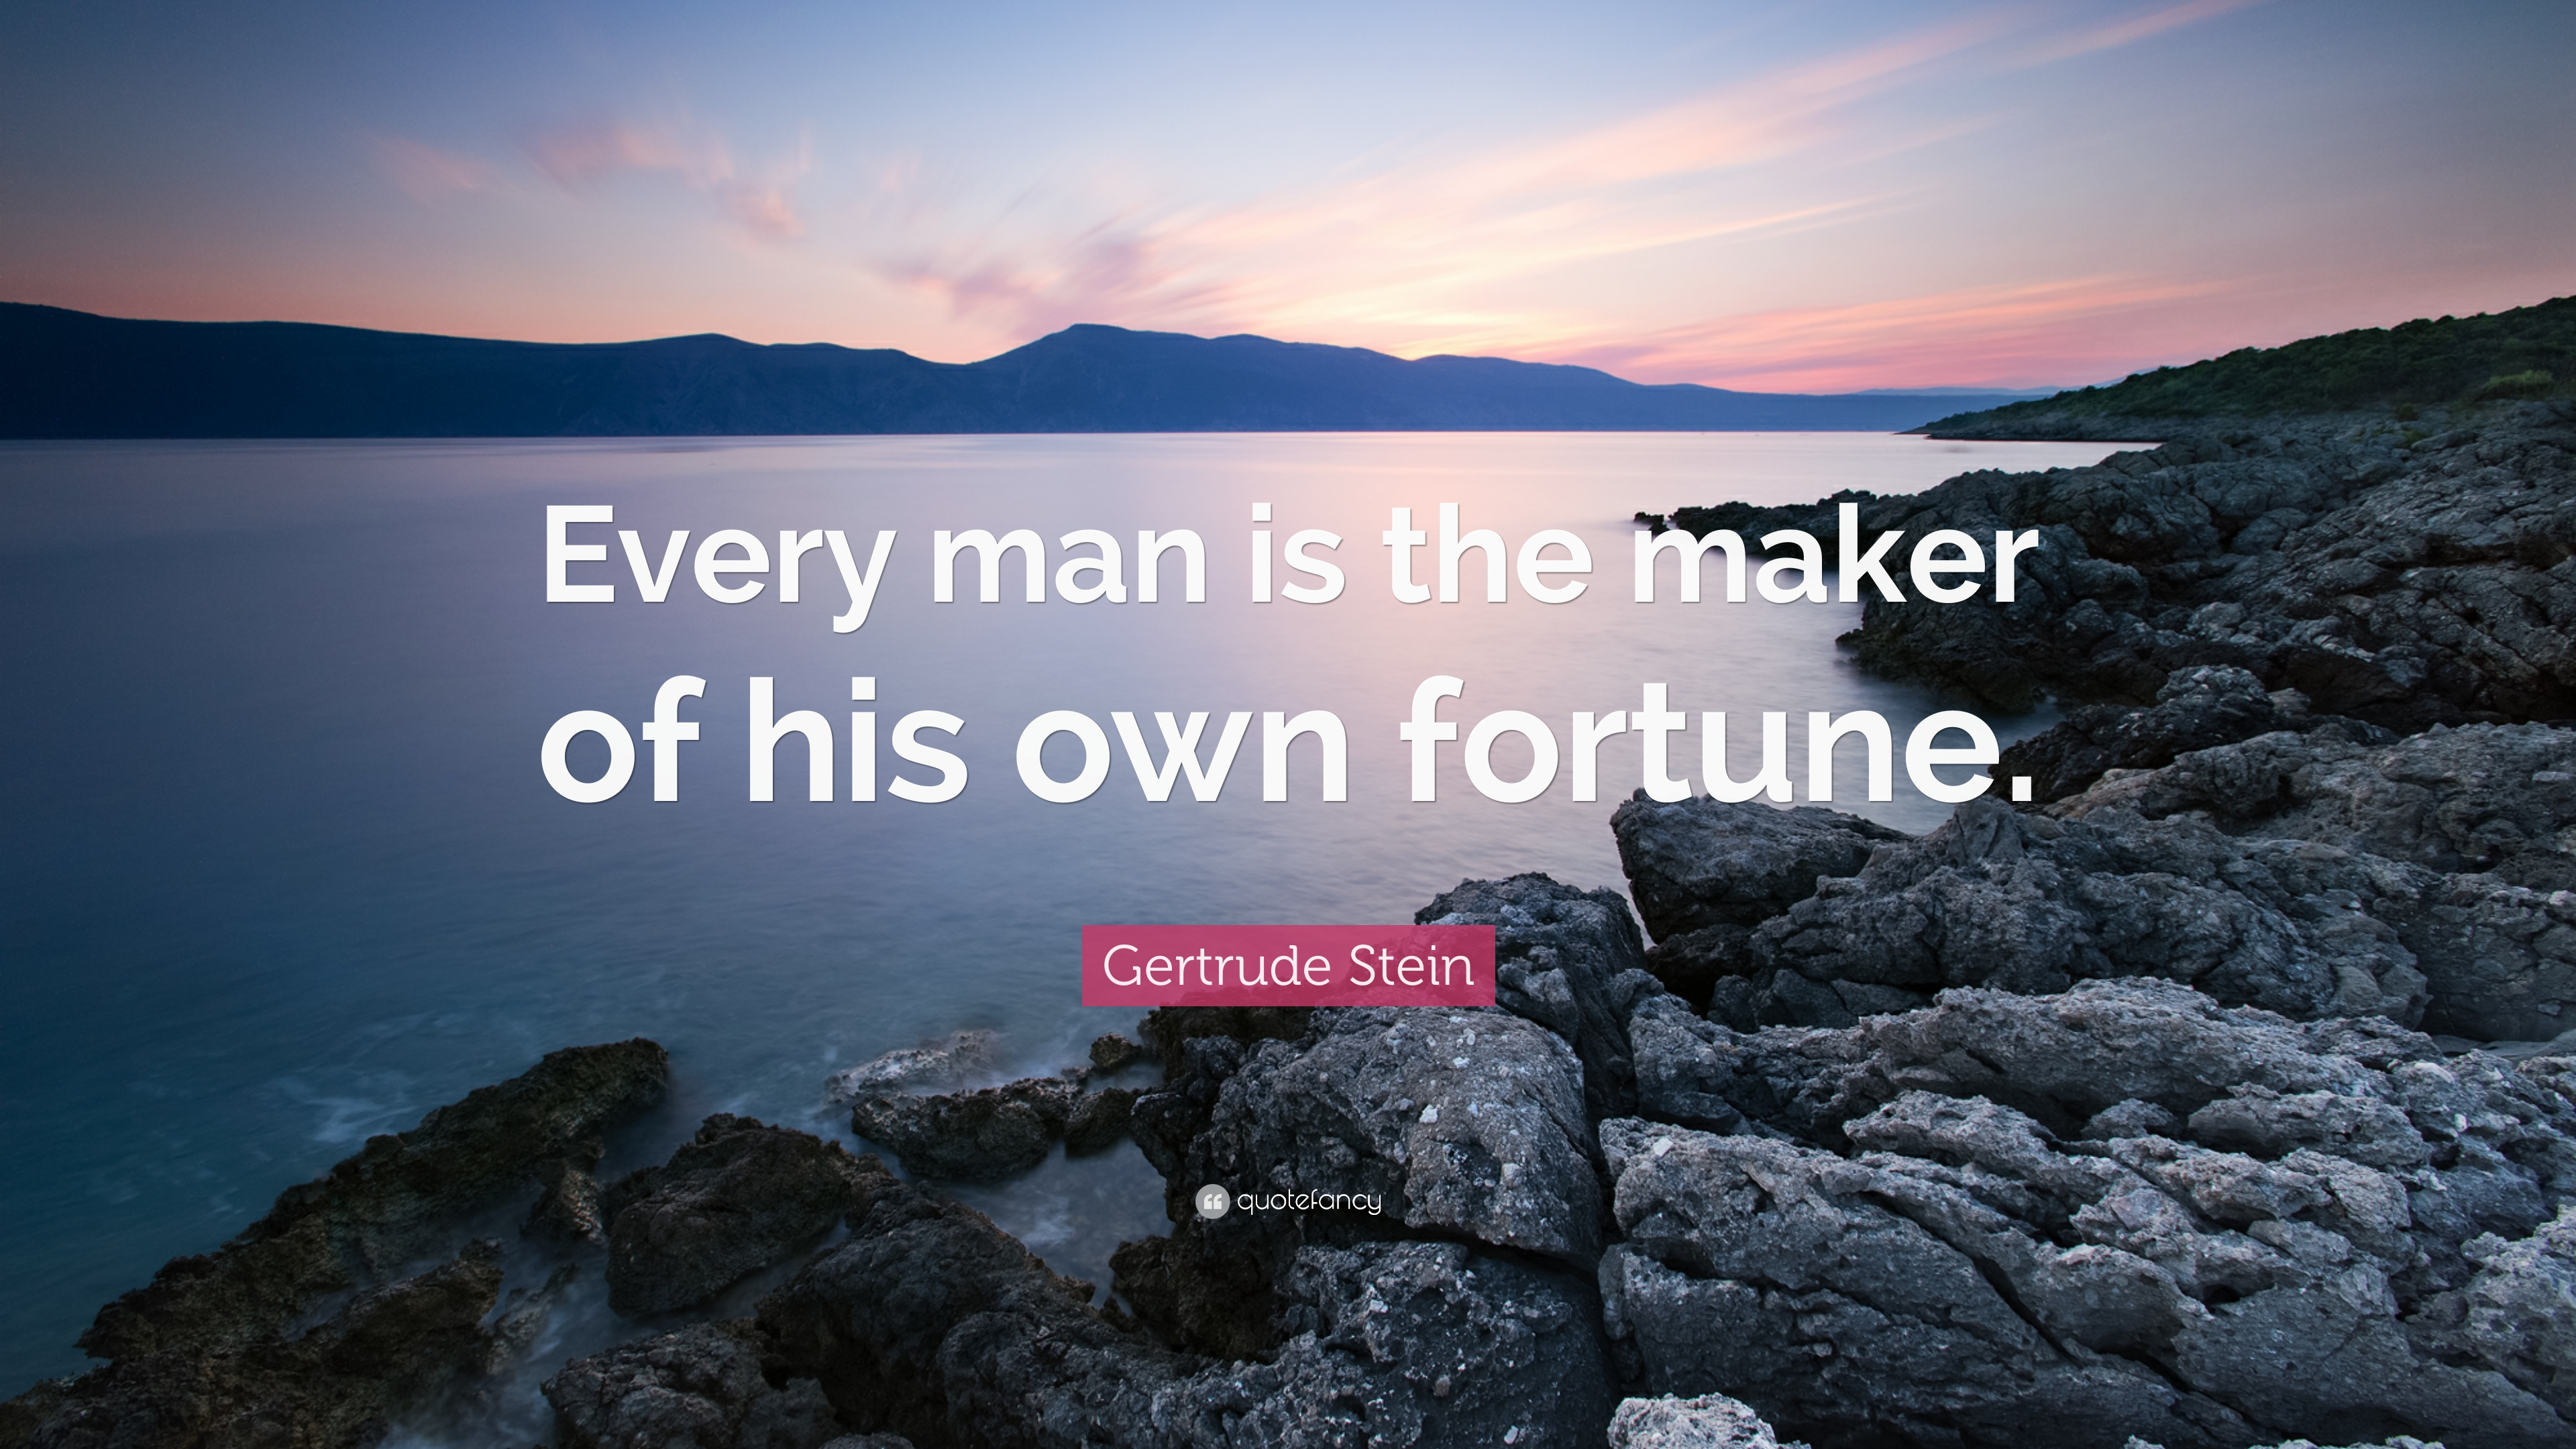 Image of: Inspirational Quote Gertrude Stein Quote every Man Is The Maker Of His Own Fortune Quotefancy Gertrude Stein Quote every Man Is The Maker Of His Own Fortune